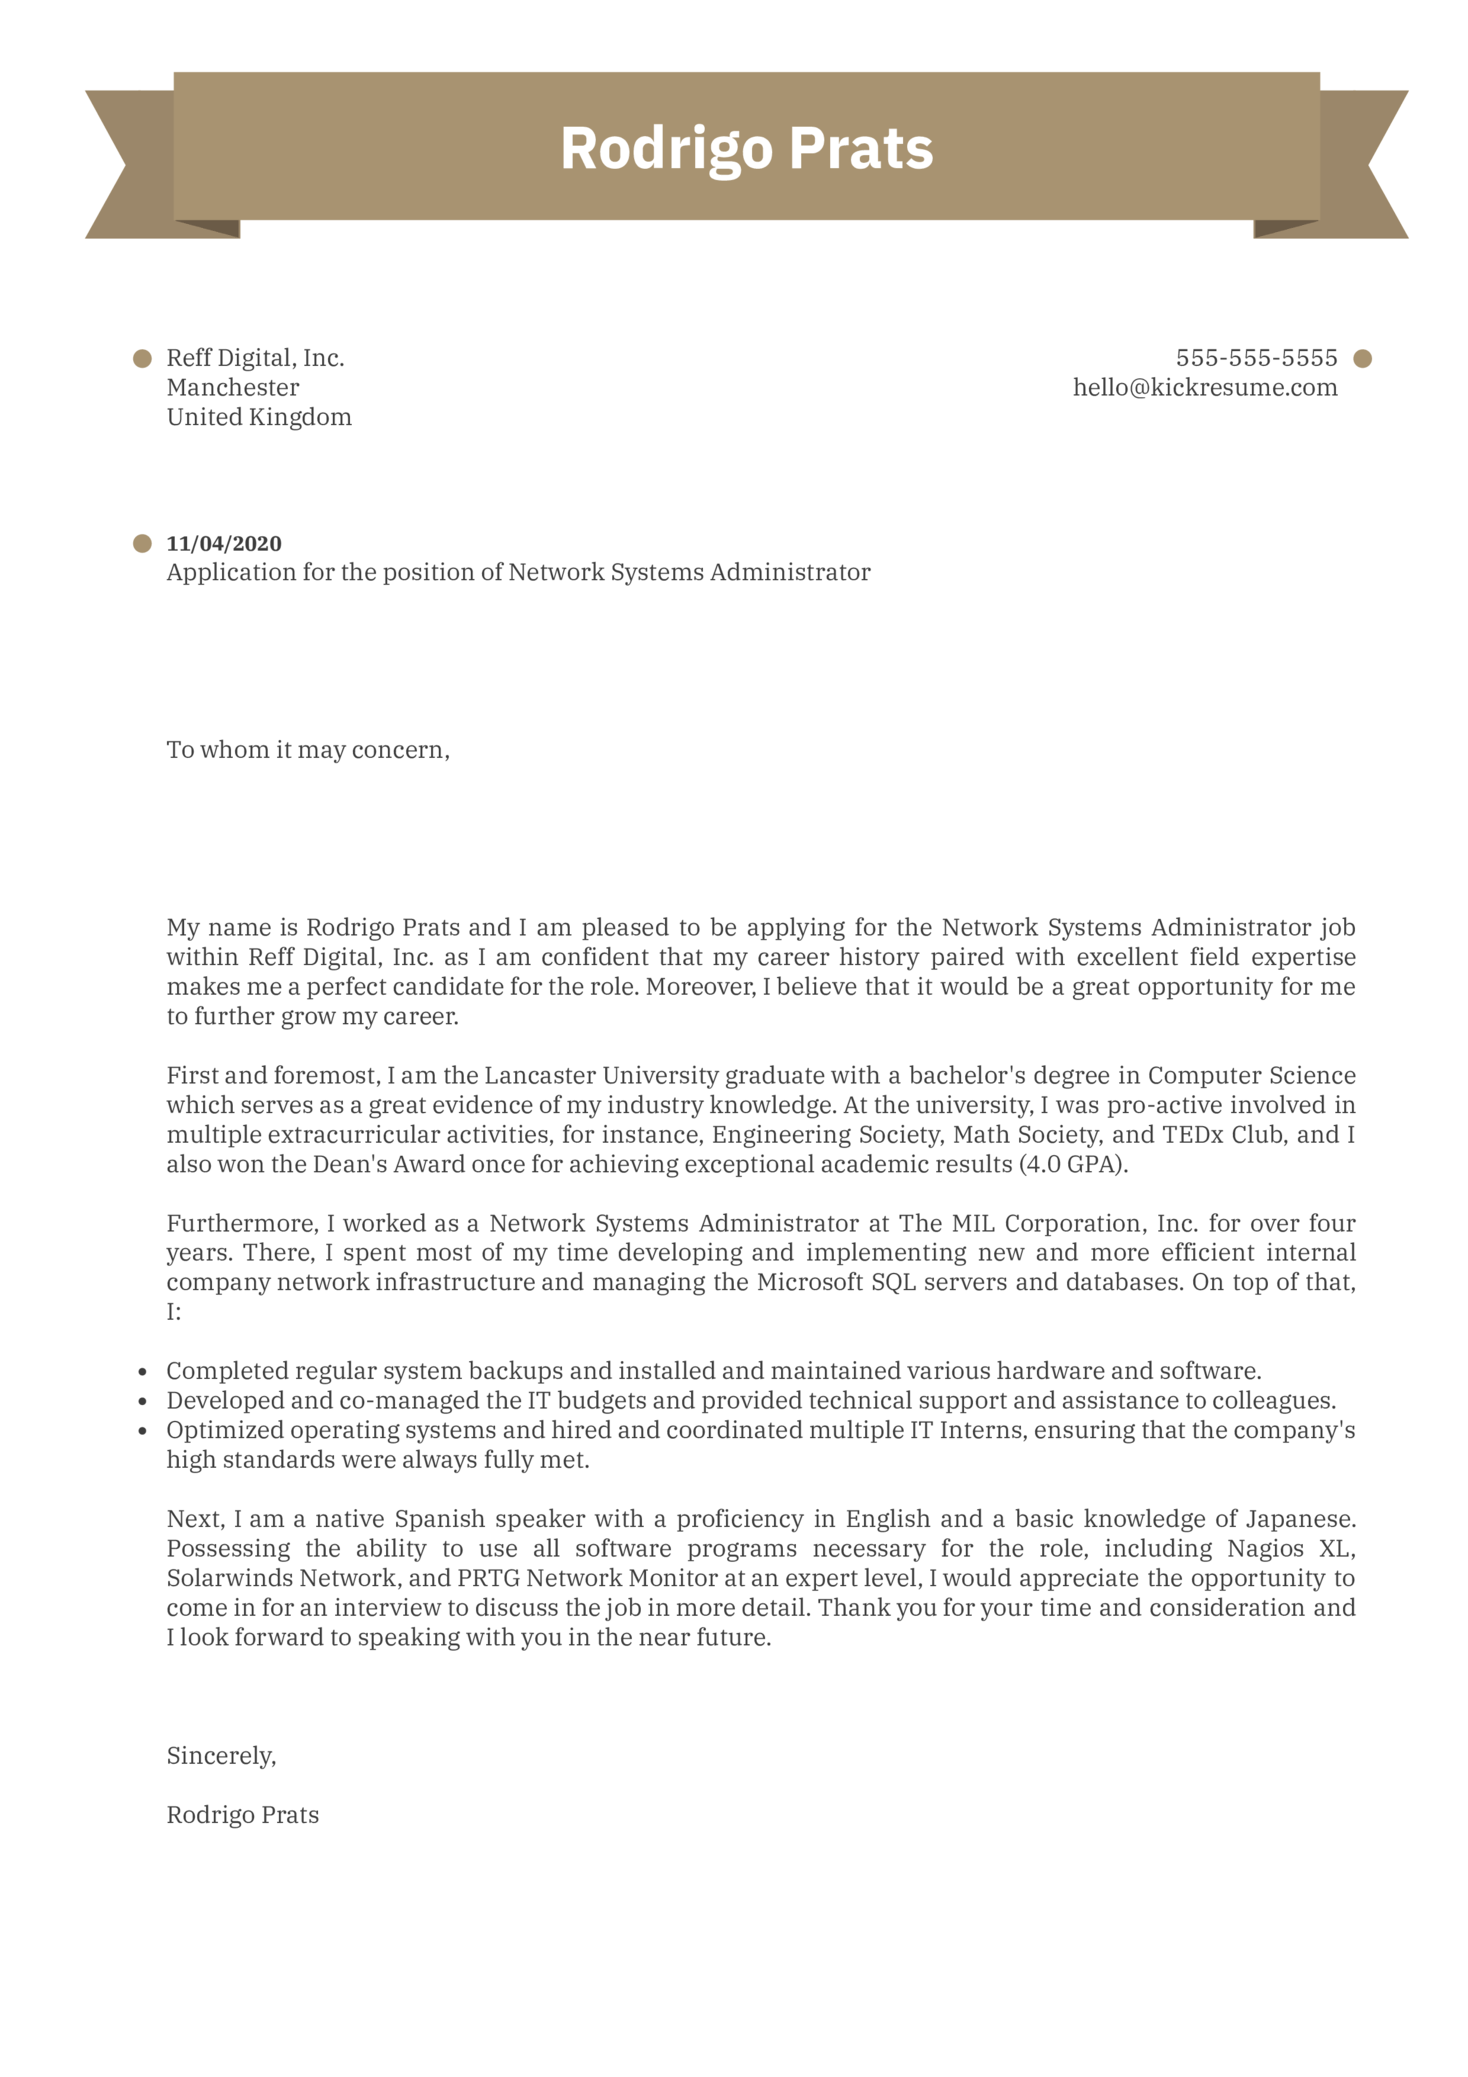 Network Systems Administrator Cover Letter Sample